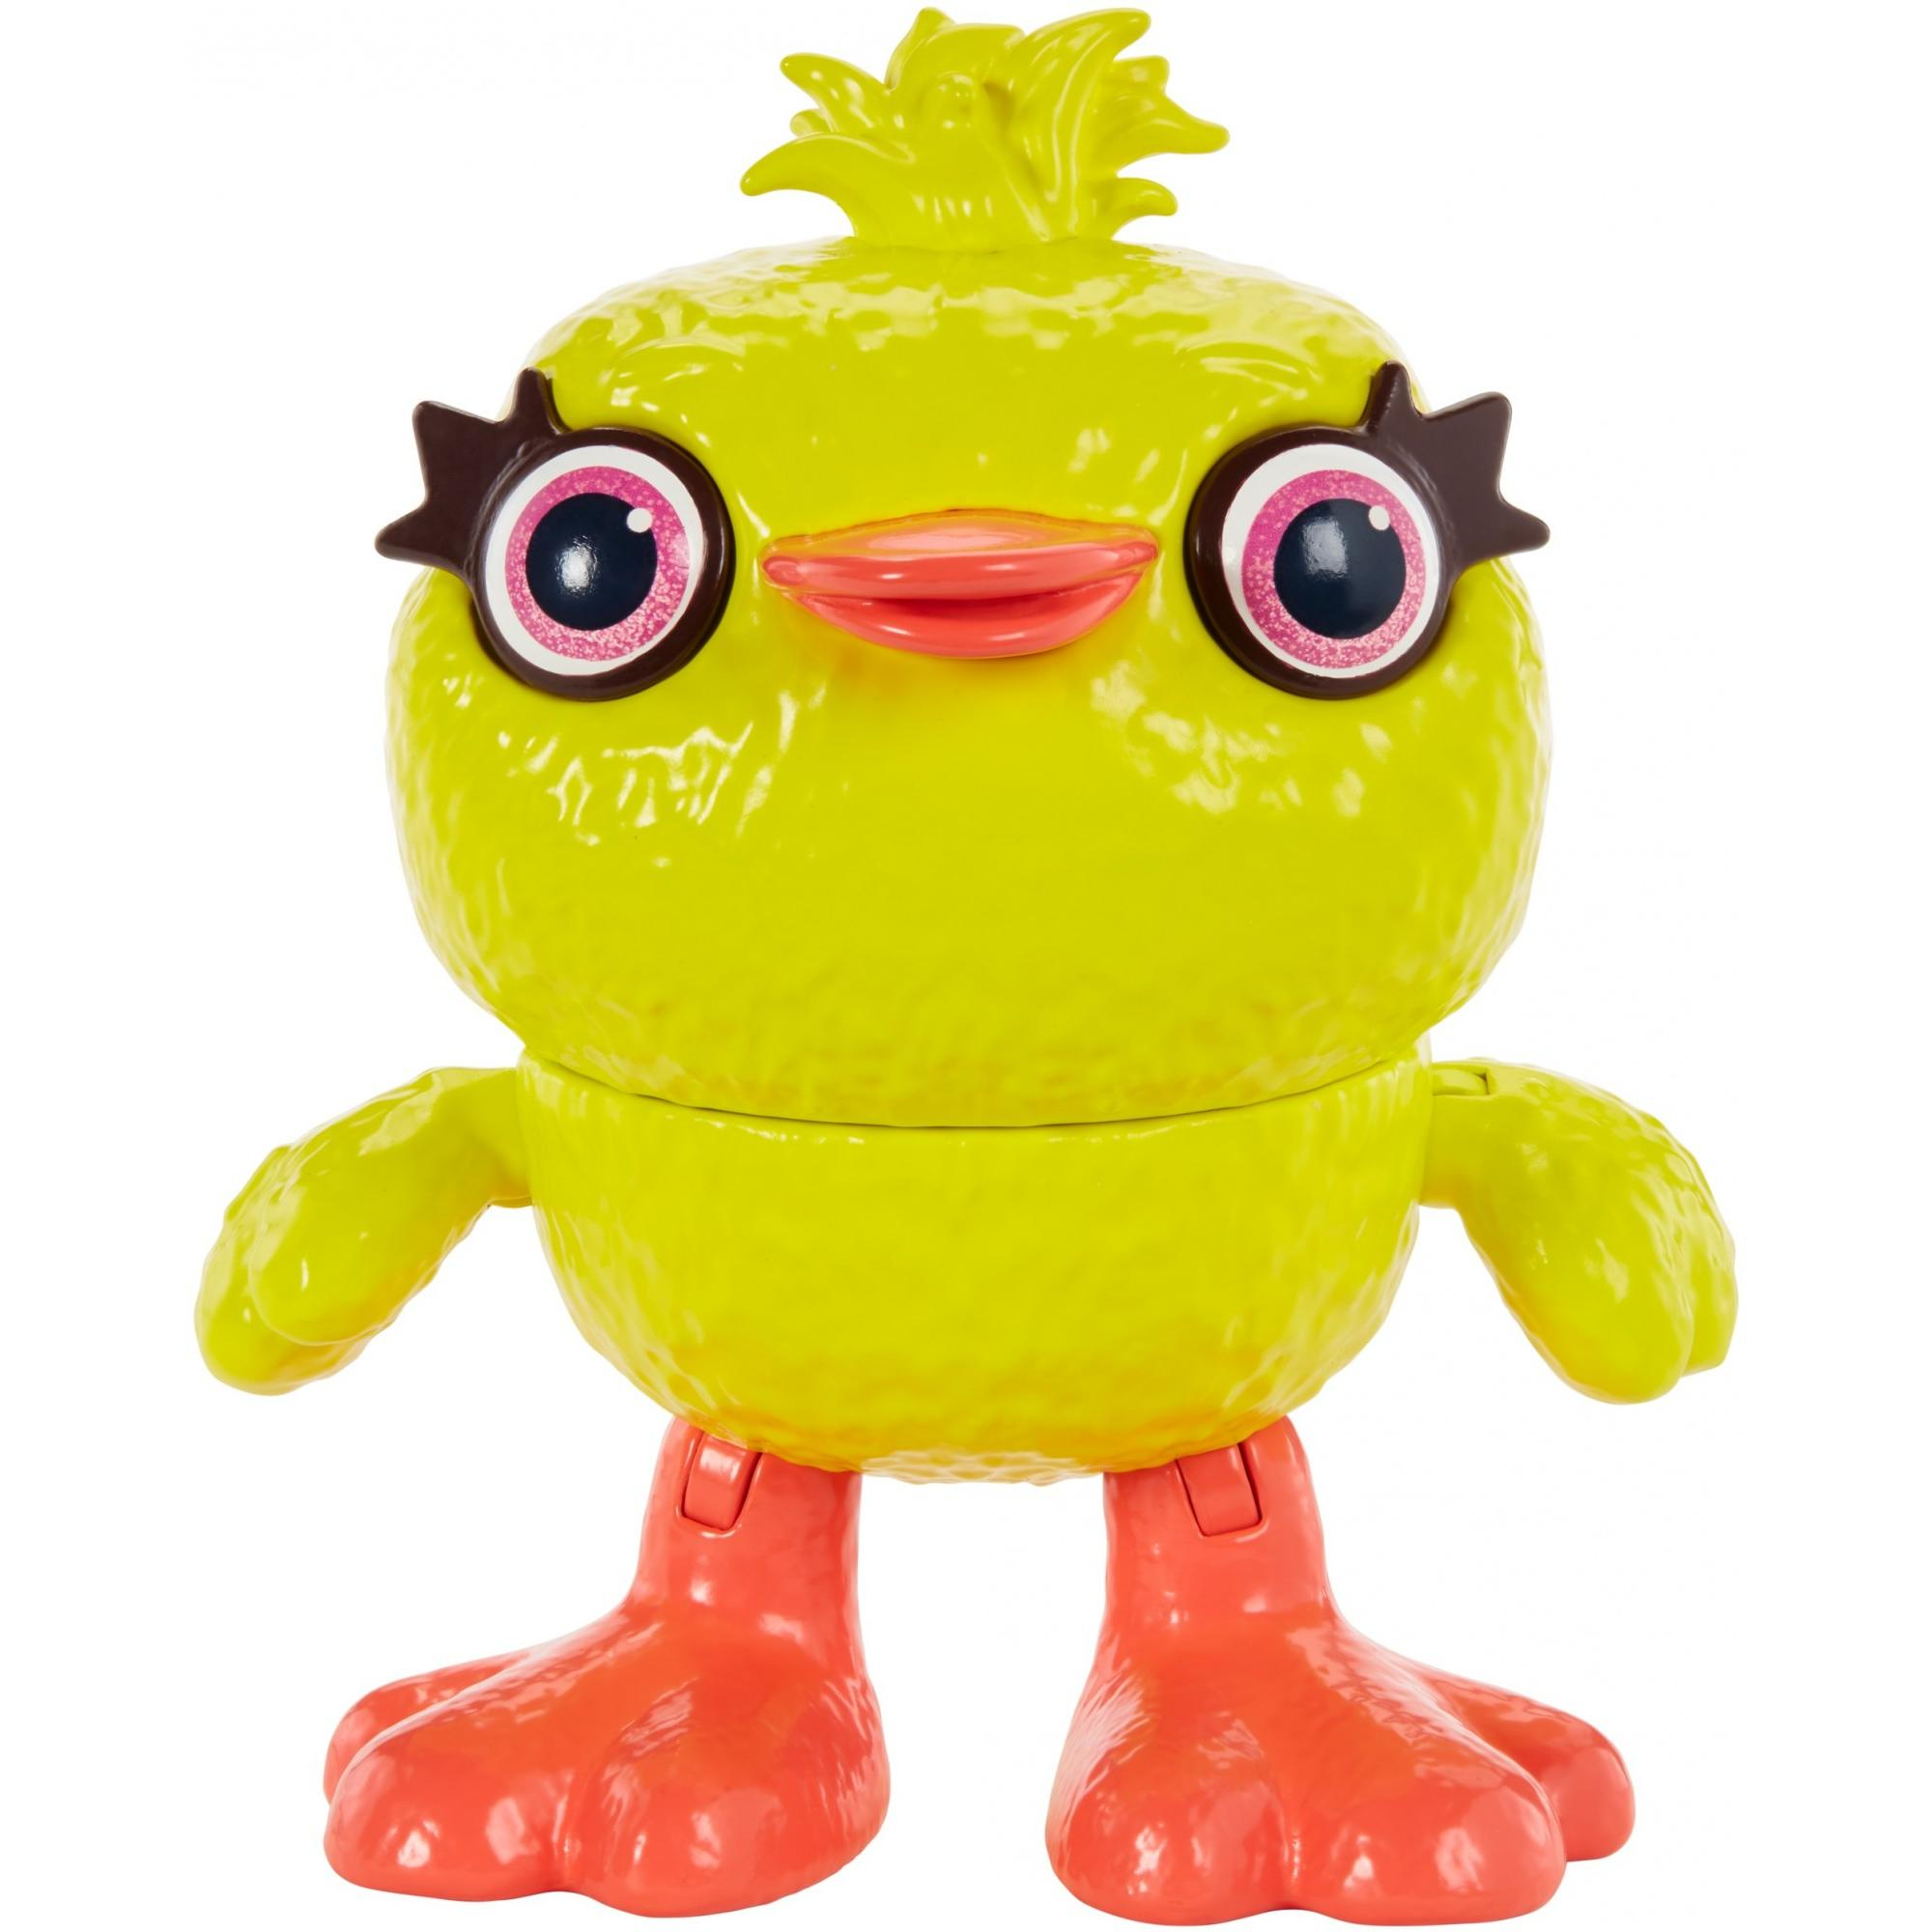 Disney Pixar Toy Story 4 Ducky Figure in Movie-Inspired Scale